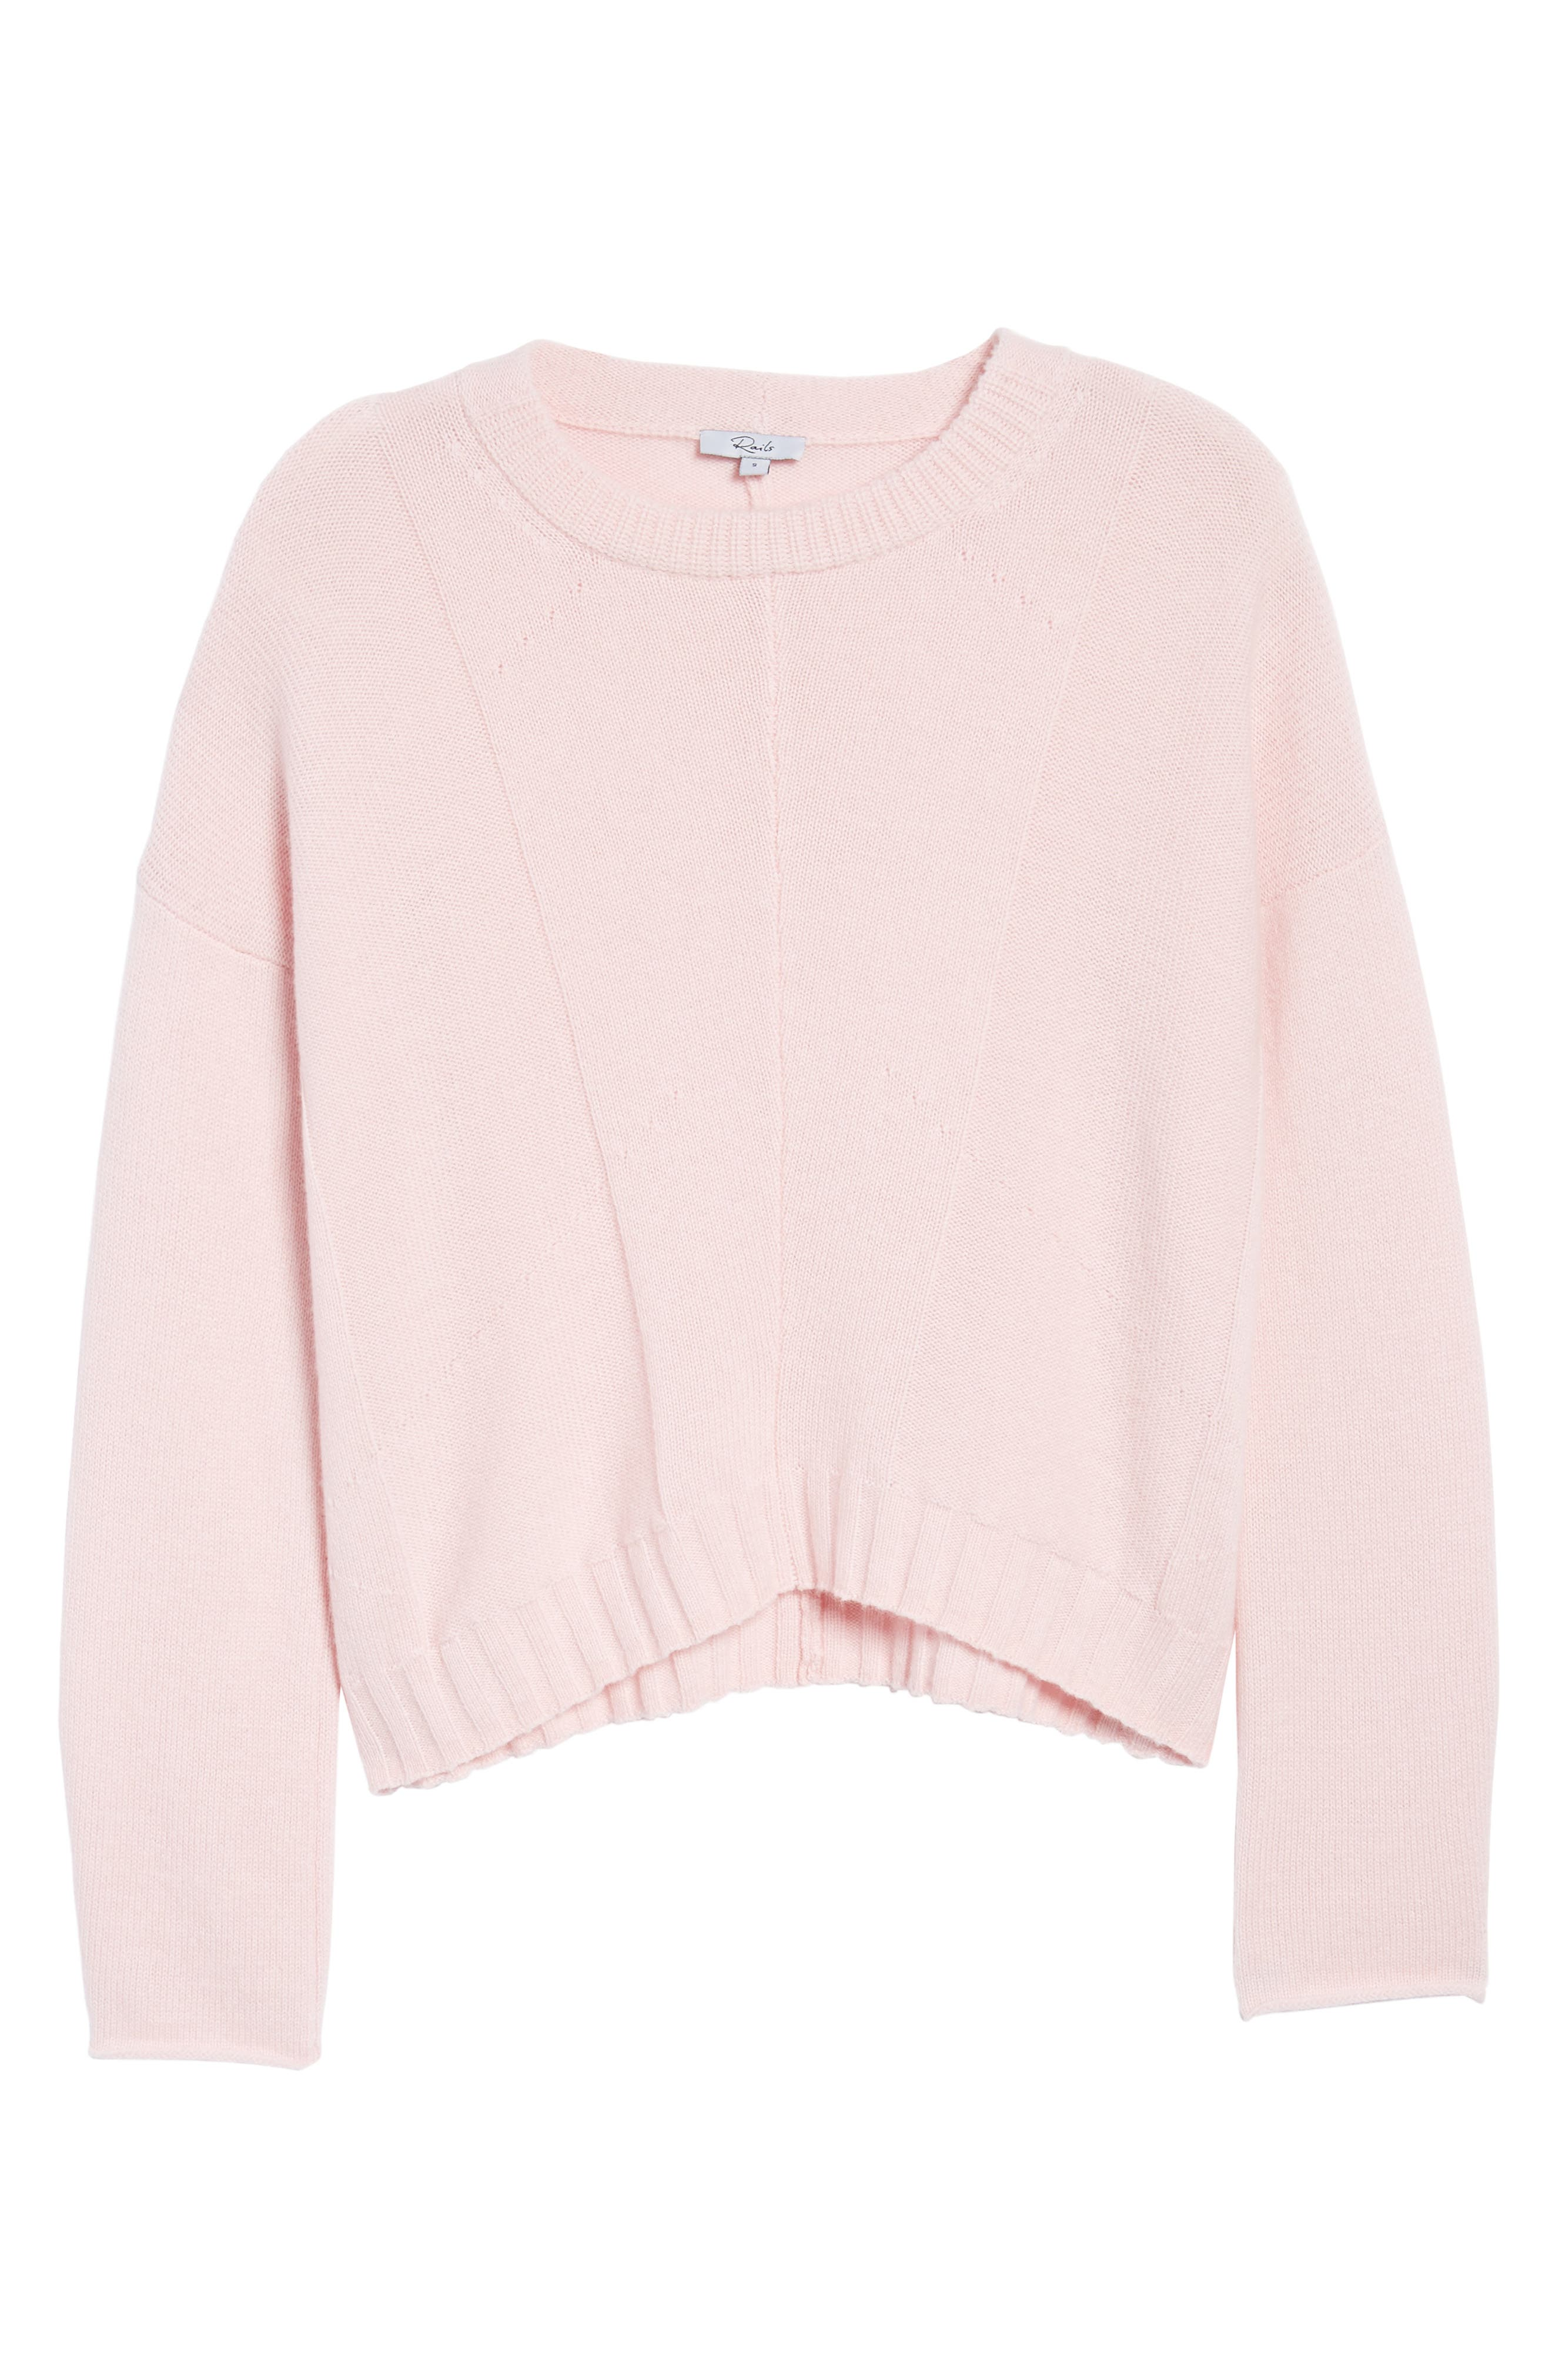 Joanna Wool & Cashmere Sweater,                             Alternate thumbnail 6, color,                             670